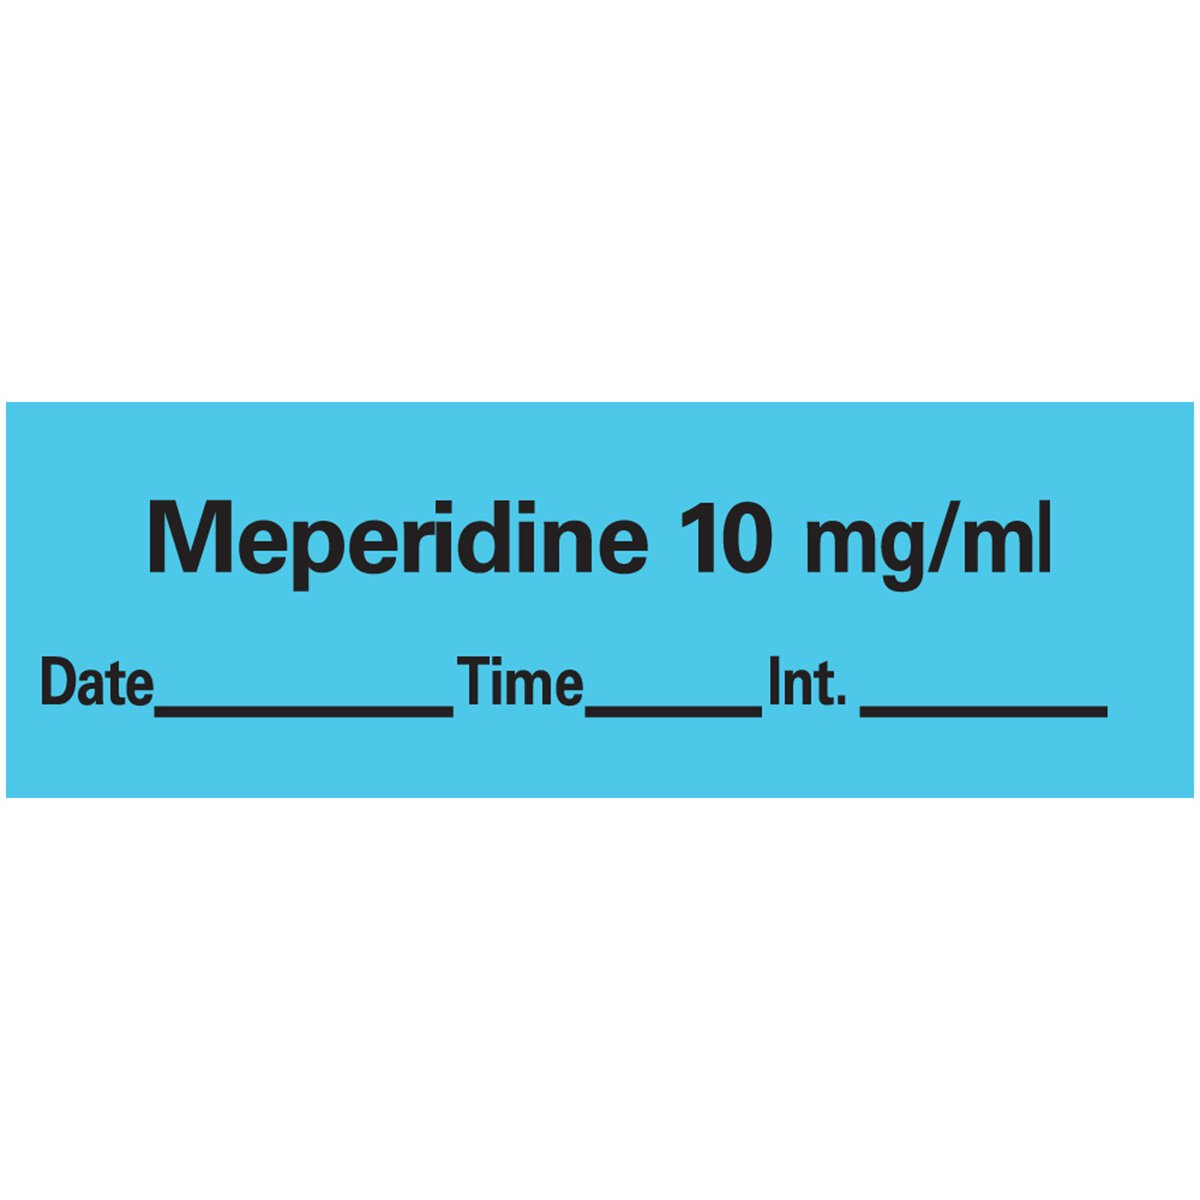 PDC Healthcare AN-12D10 Anesthesia Tape with Date, Time and Initial, Removable, Meperidine 10 mg/mL, 1'' Core, 1/2'' x 500'', Imprints Blue 333 (Pack of 1)